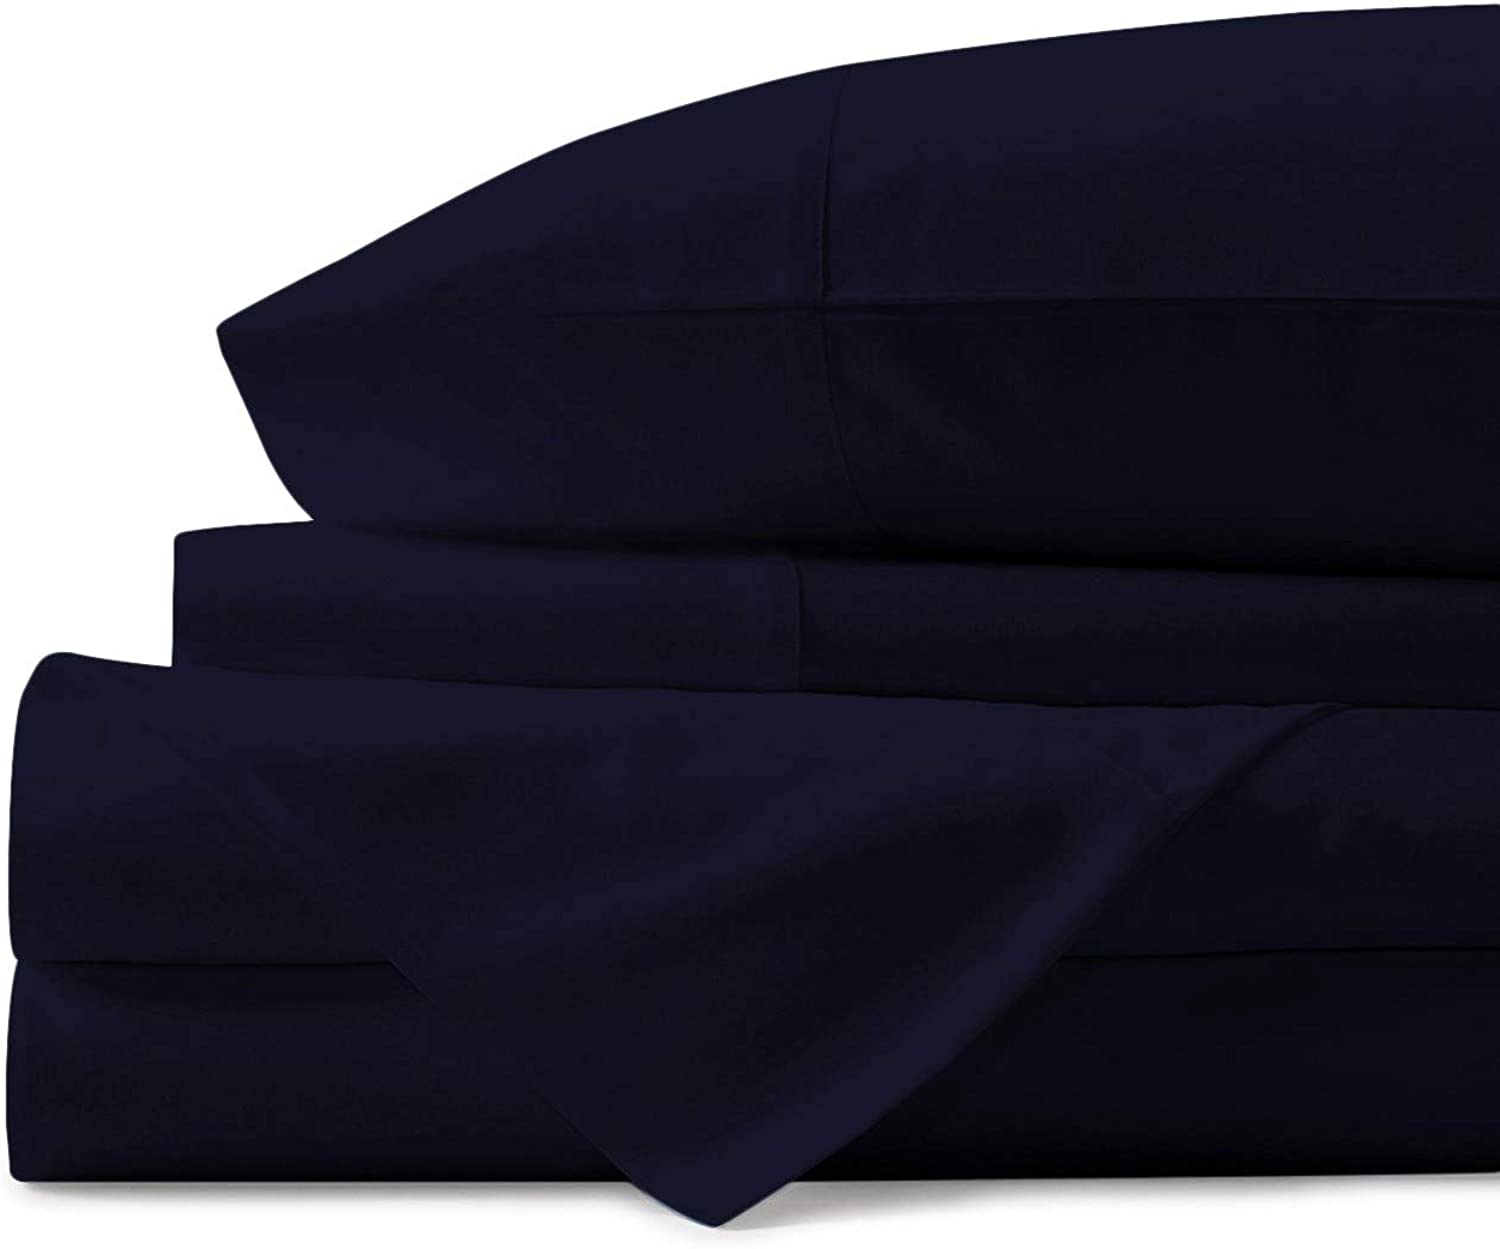 Mayfair Linen 100% Egyptian Cotton Sheets, Navy bluee Full Sheets Set, 600 Thread Count Long Staple Cotton, Sateen Weave for Soft and Silky Feel, Fits Mattress Upto 18'' DEEP Pocket